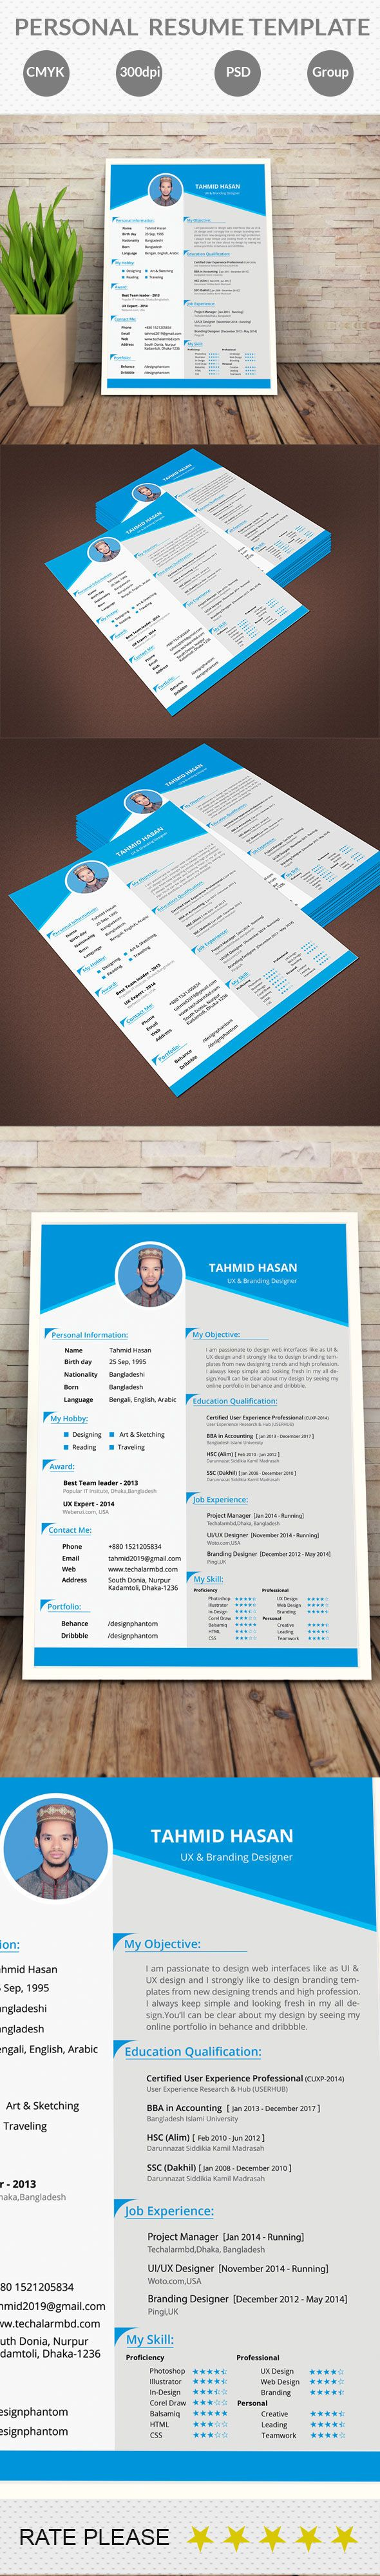 Best Cv Design Images On   Creative Industries Resume